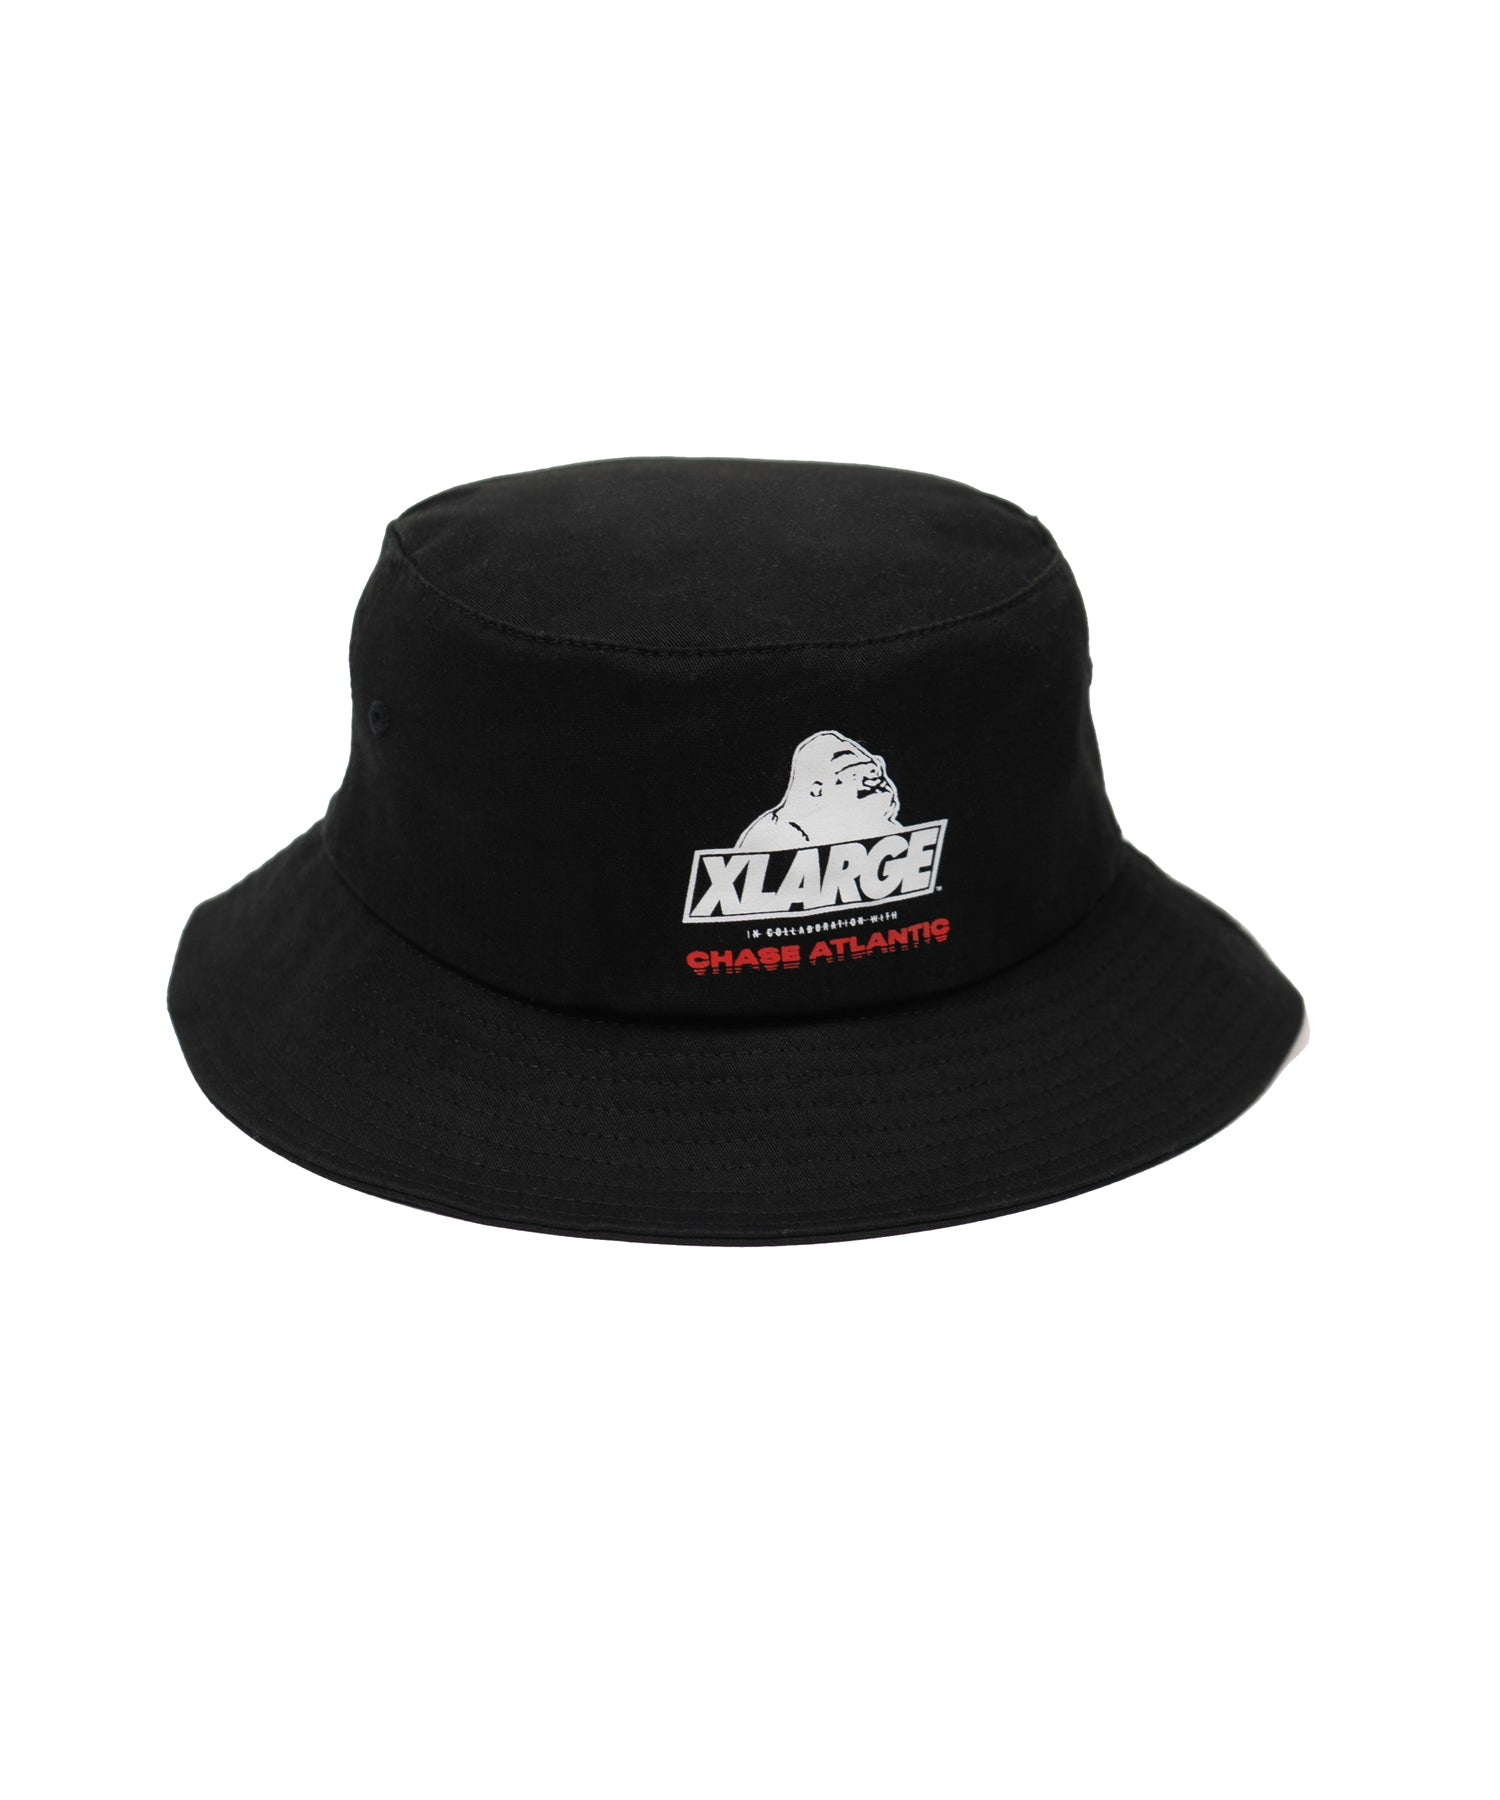 6e2c563f CHASE ATLANTIC CAUTION BUCKET HAT HEADWEAR XLARGE